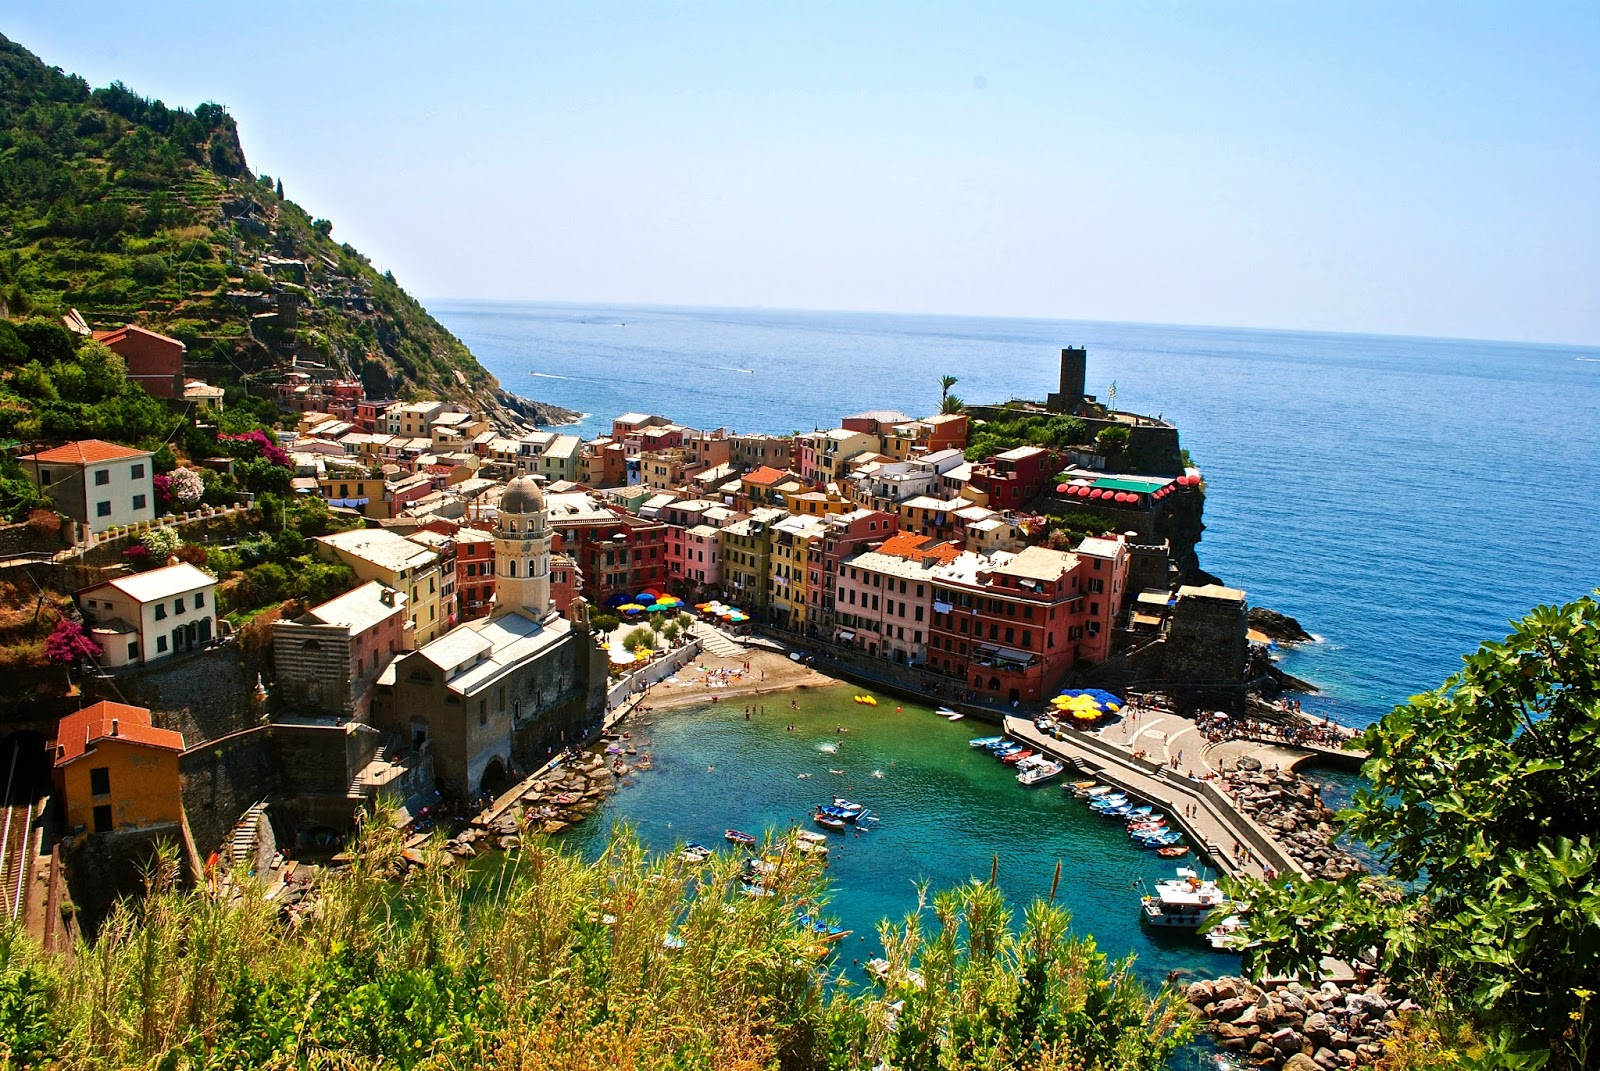 View of Vernazza in the Cinque Terre Italy from hiking route